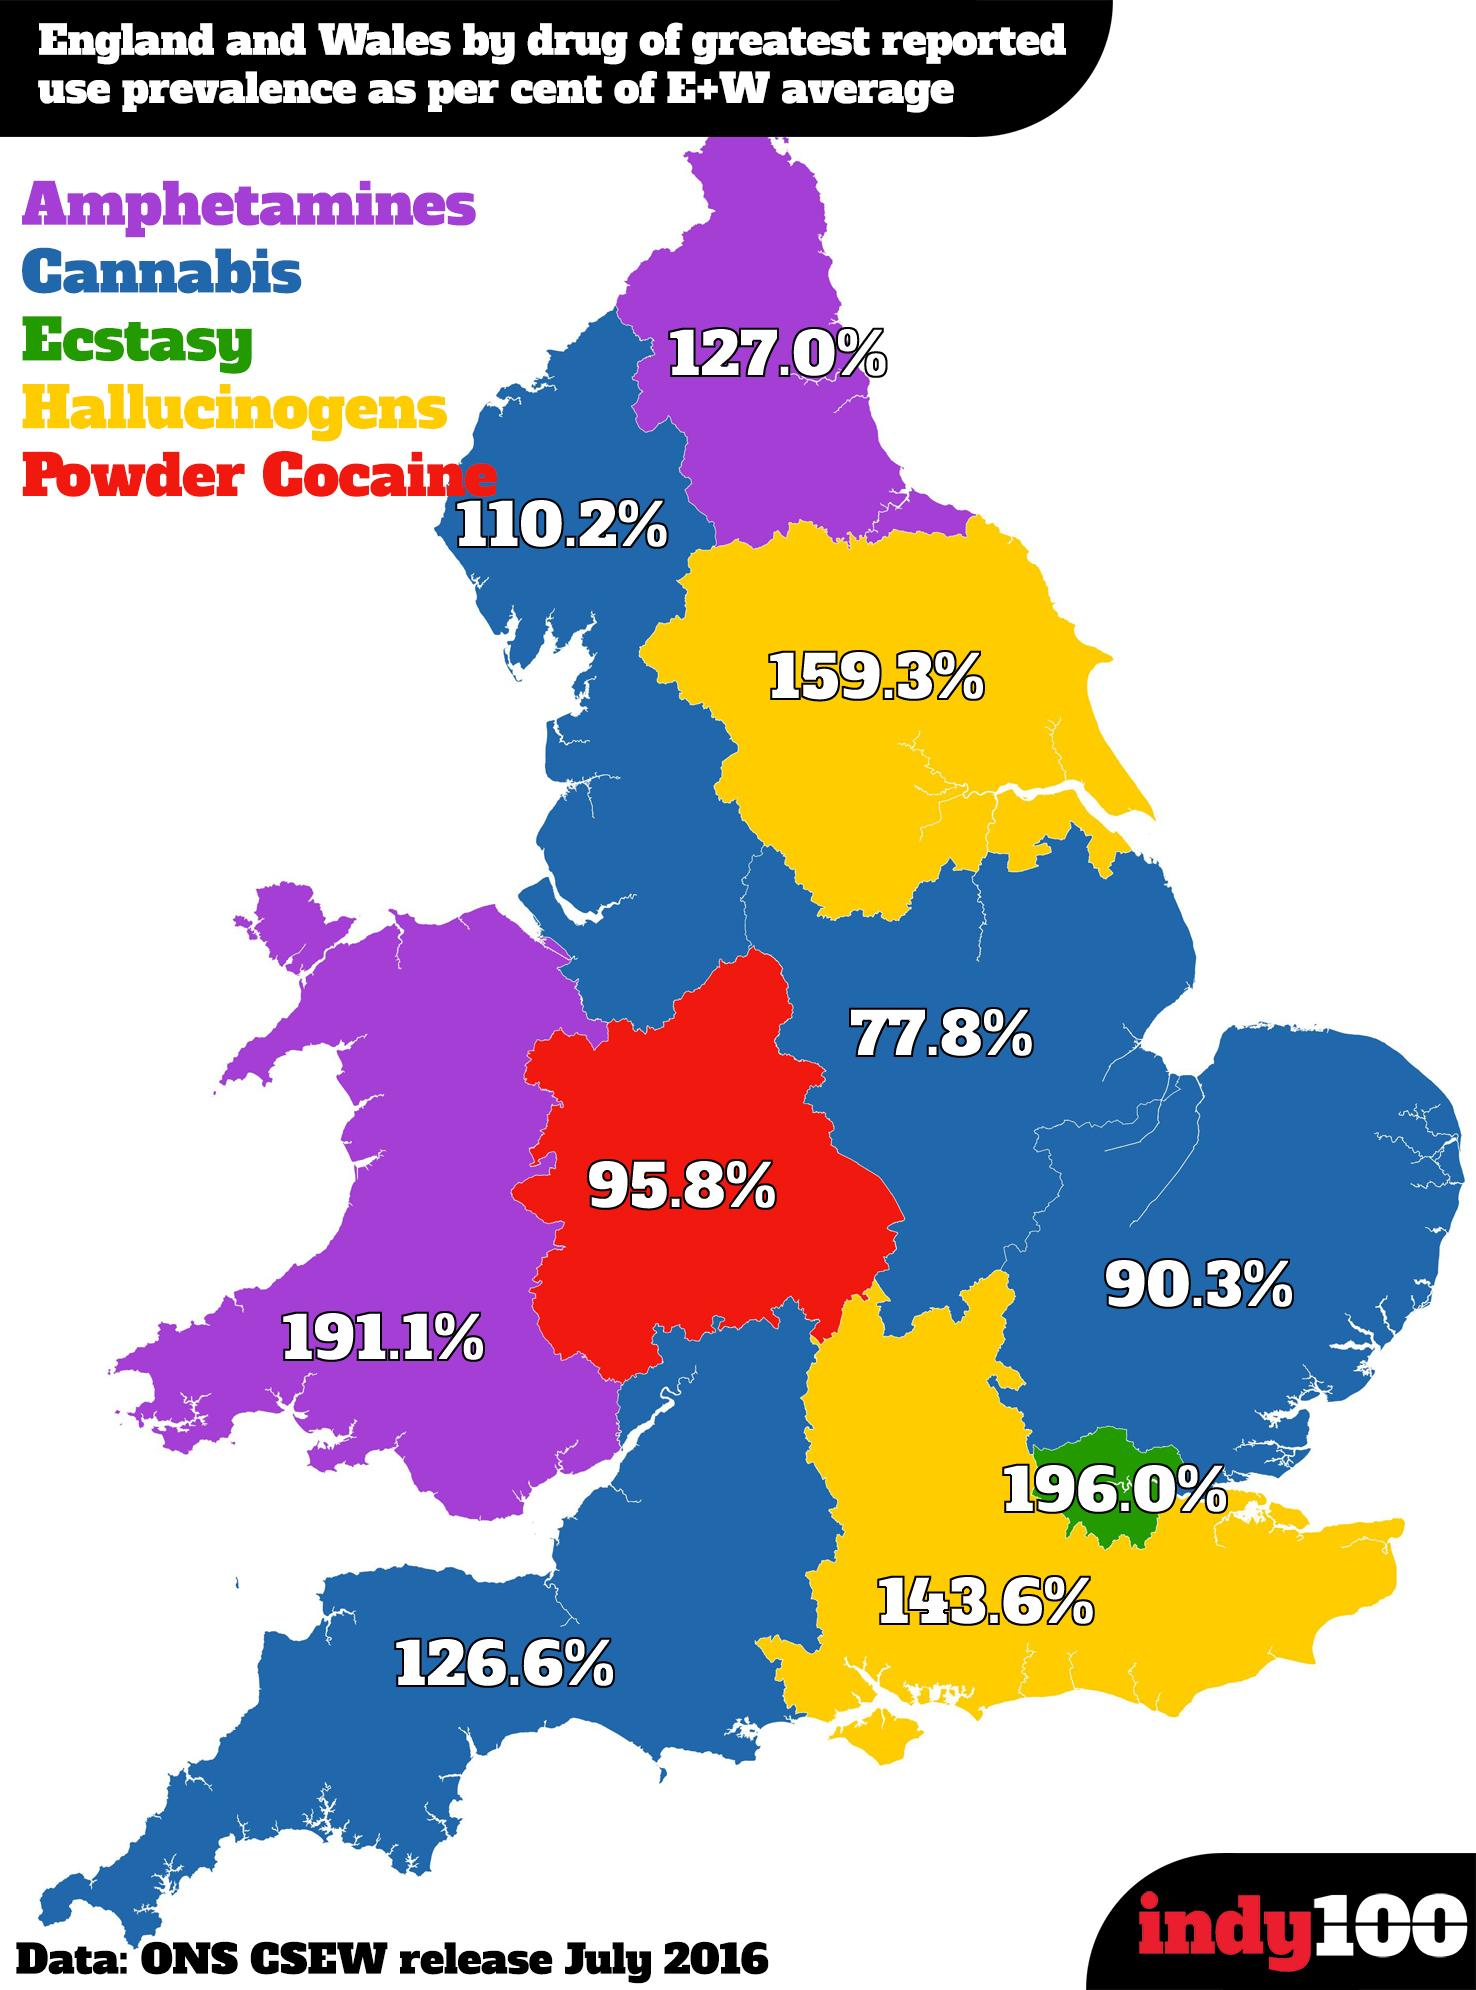 The Map Of England.The Map Of England And Wales By Drug Of Preference Indy100